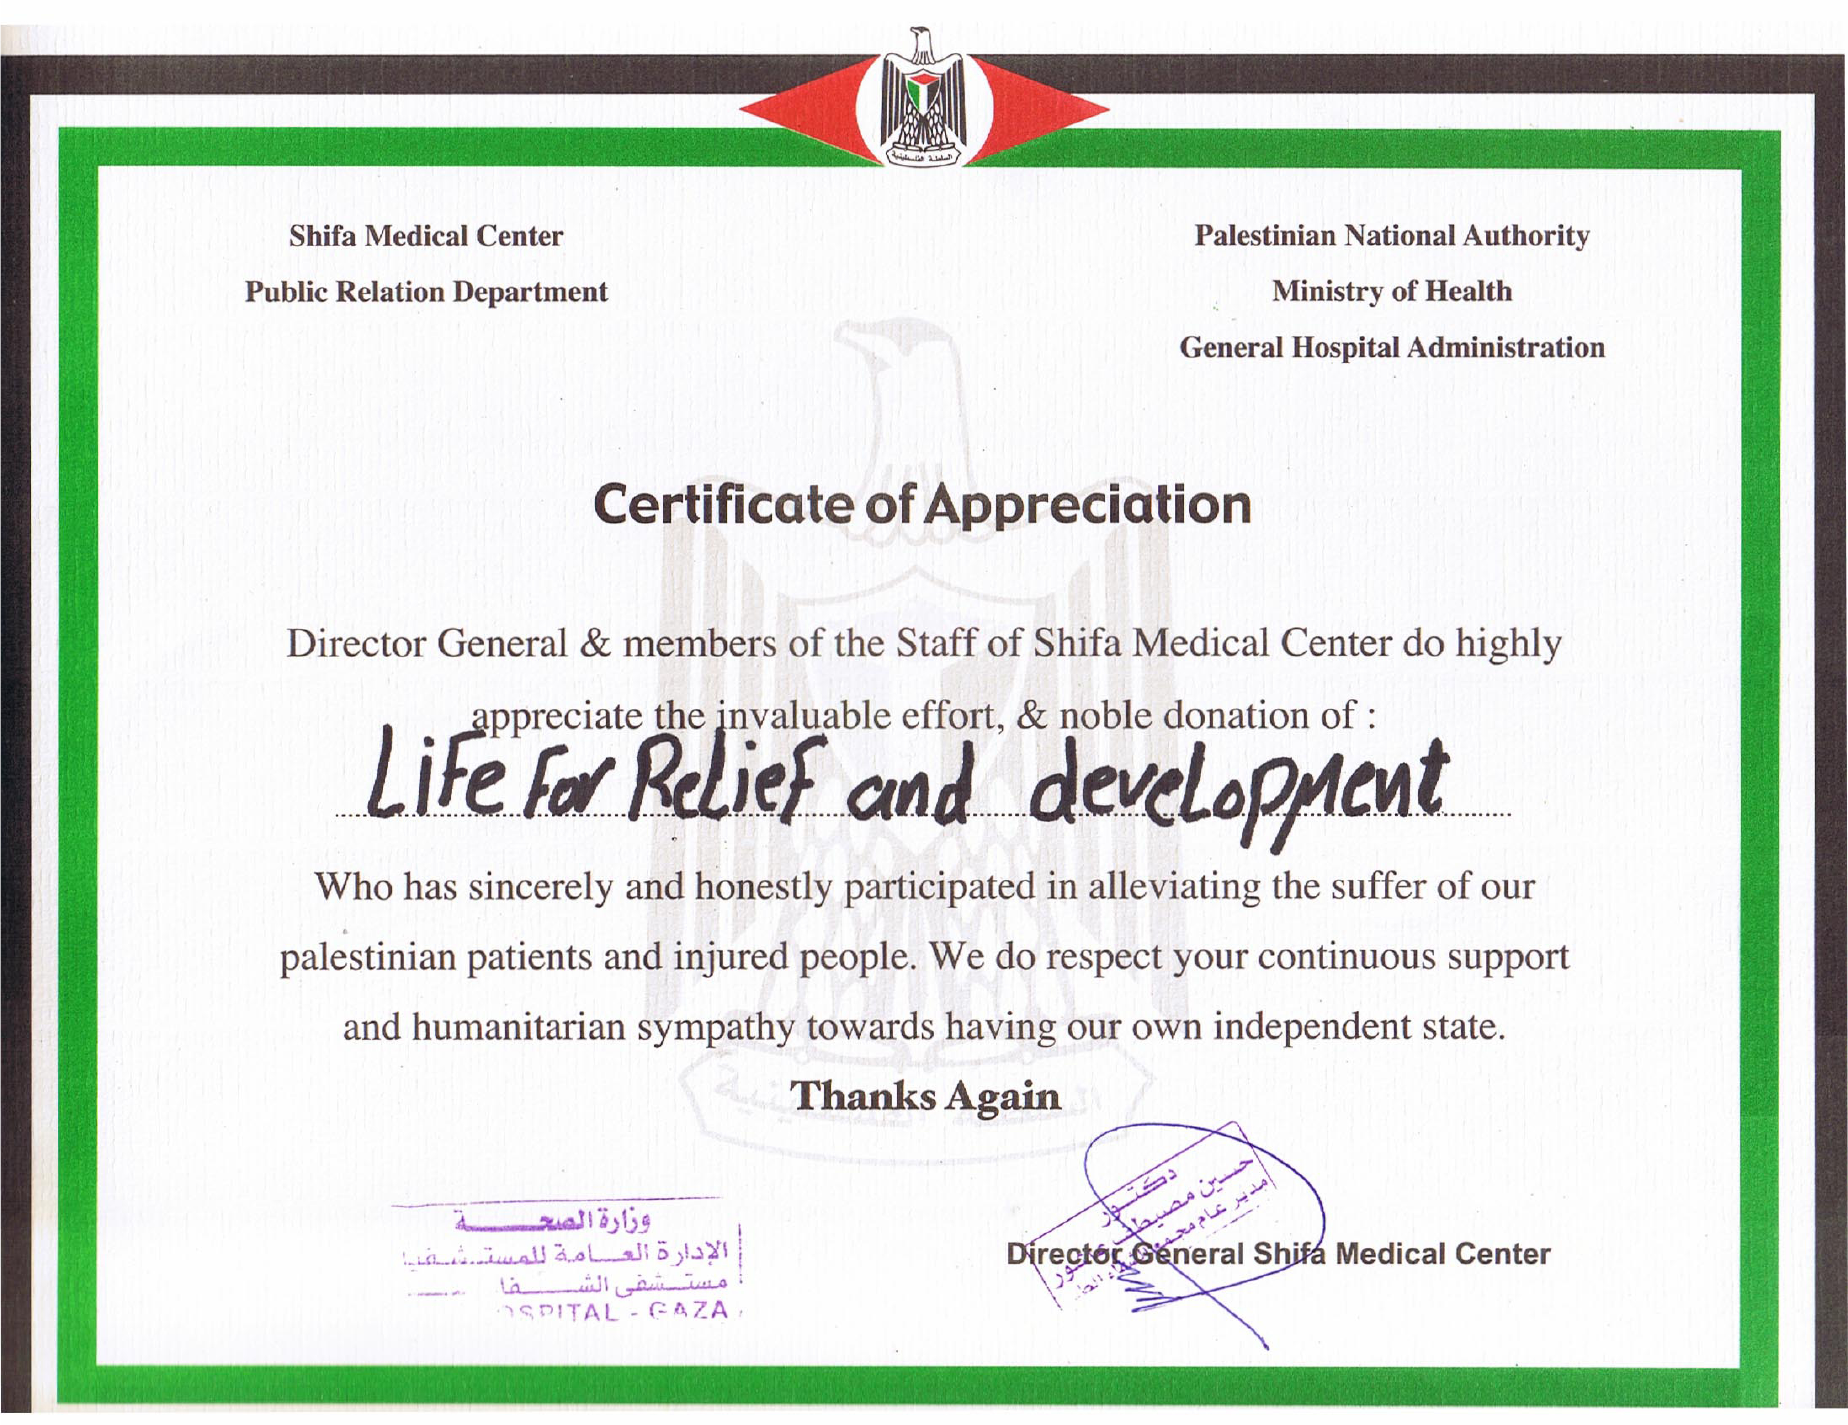 Sample certificate of appreciation free download for Life membership certificate templates